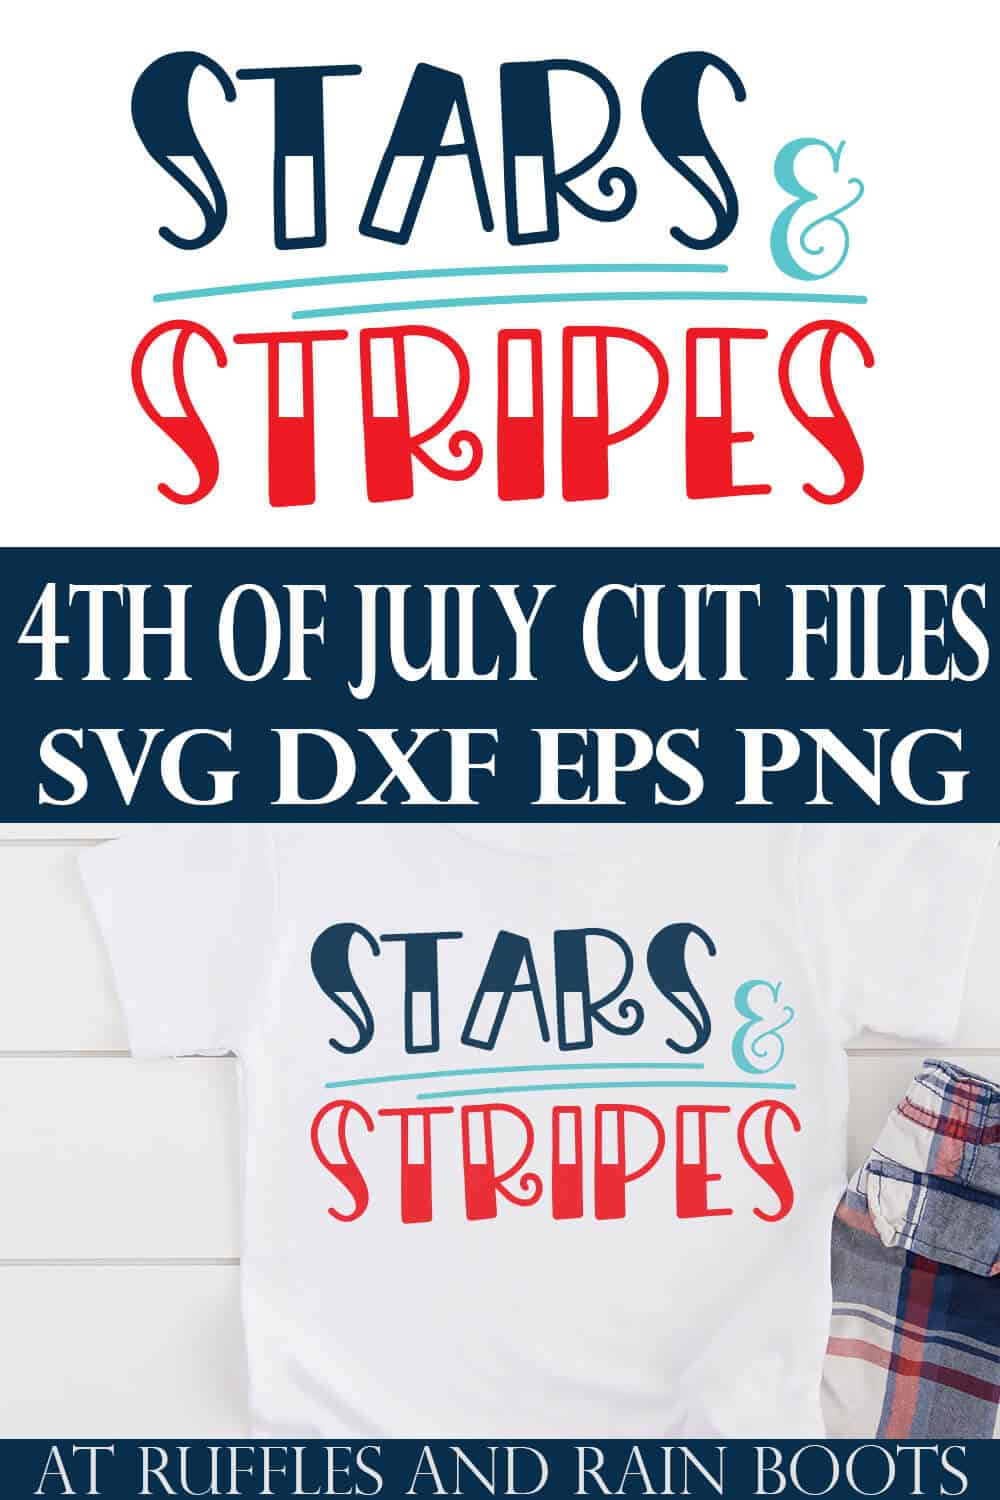 stacked image photo collage of Stars and Stripes cut file on a t shirt with text which reads 4th of July cut files